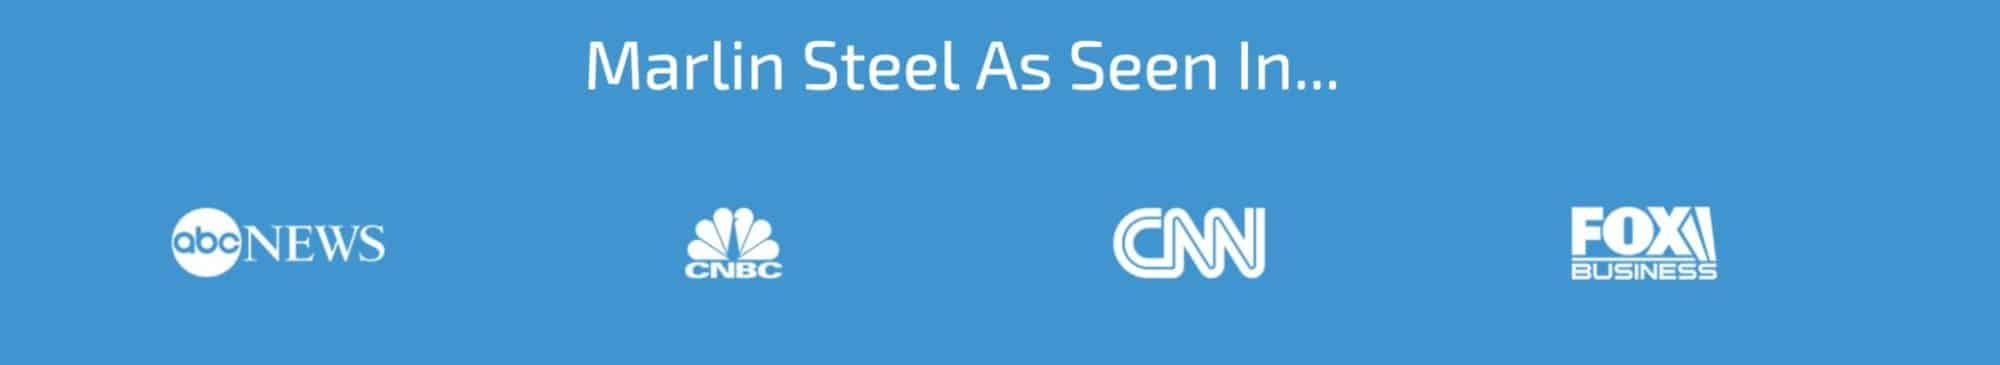 Industrial Machinery- Steel website design